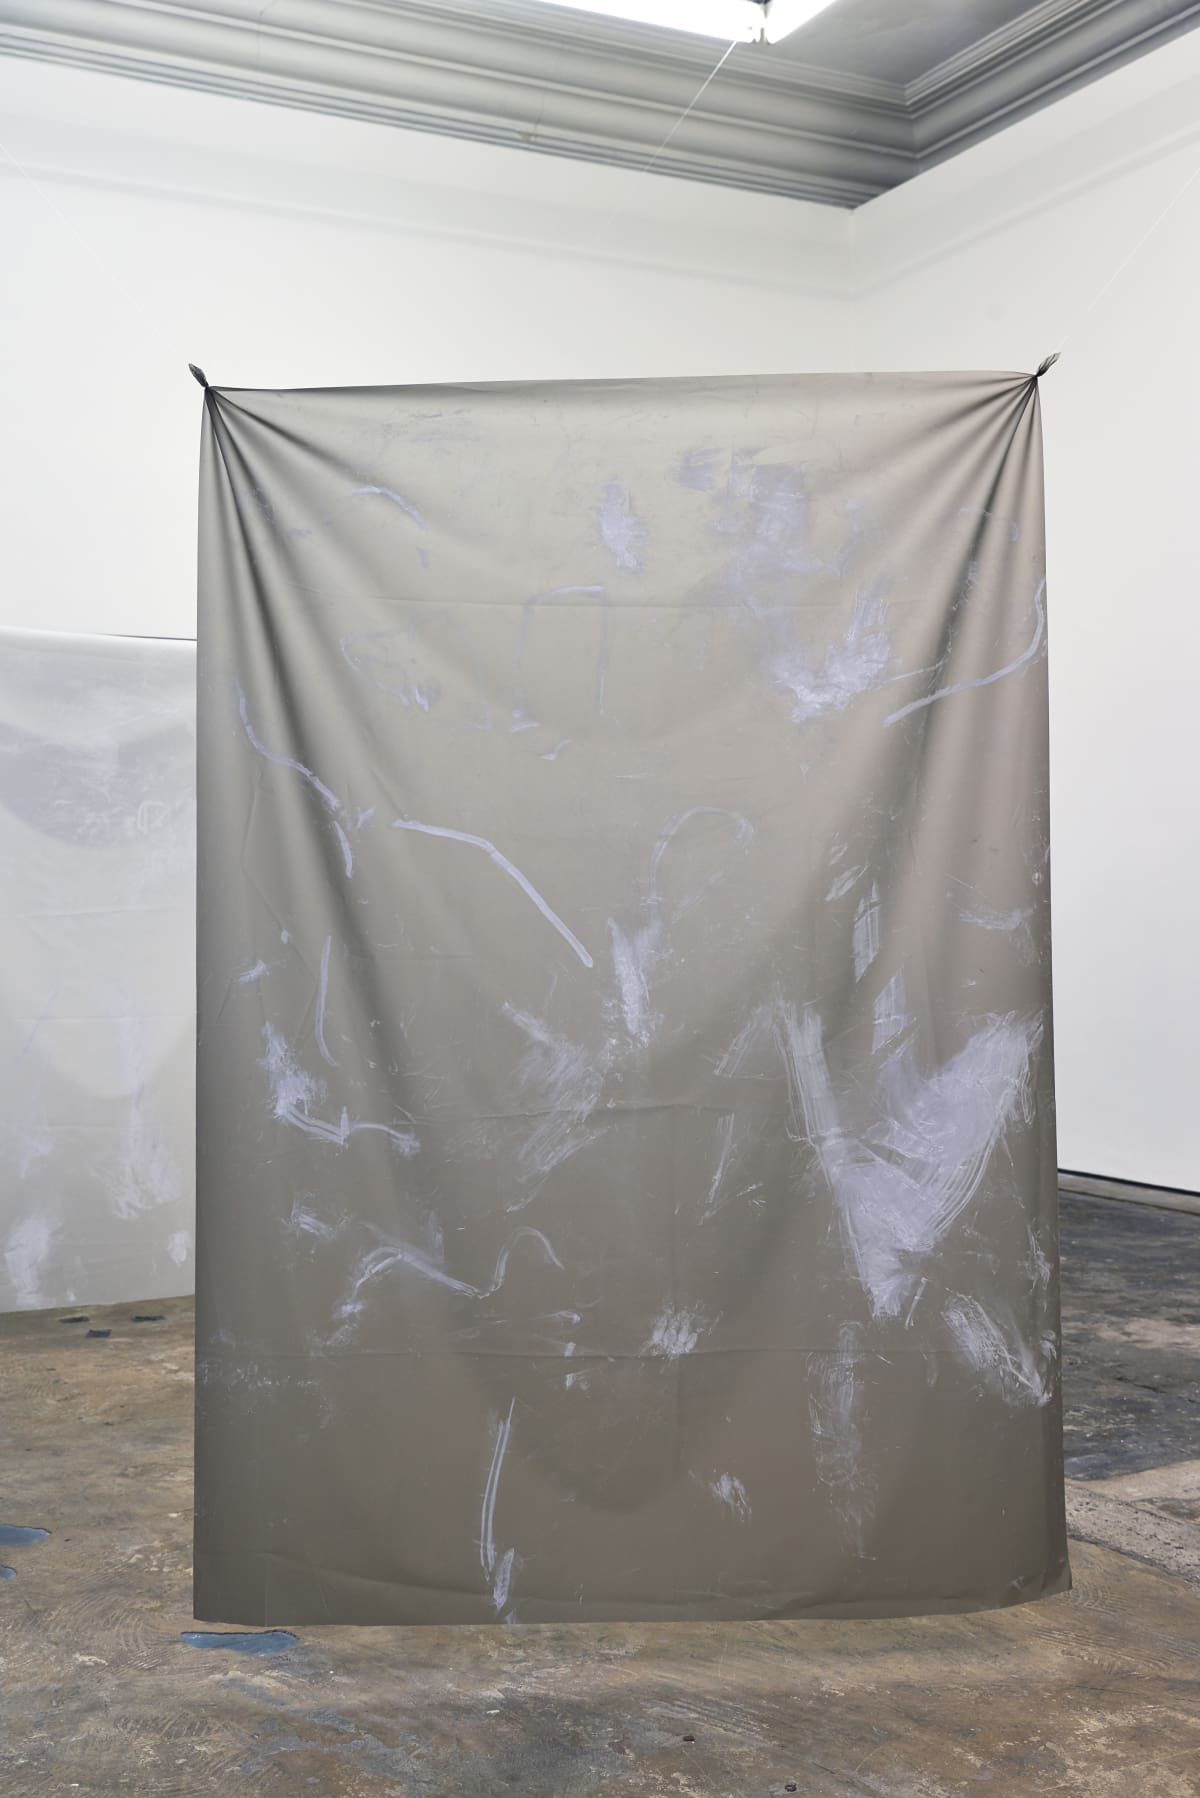 Nicola Singh within [her] reach (Grey #2), 2018 Pigment on Silicone 150 x 100 cm Courtesy of the artist. Photo: John McKenzie Commissioned for 3-Phase, a partnership between Jerwood Charitable Foundation, WORKPLACE and Eastside Projects.